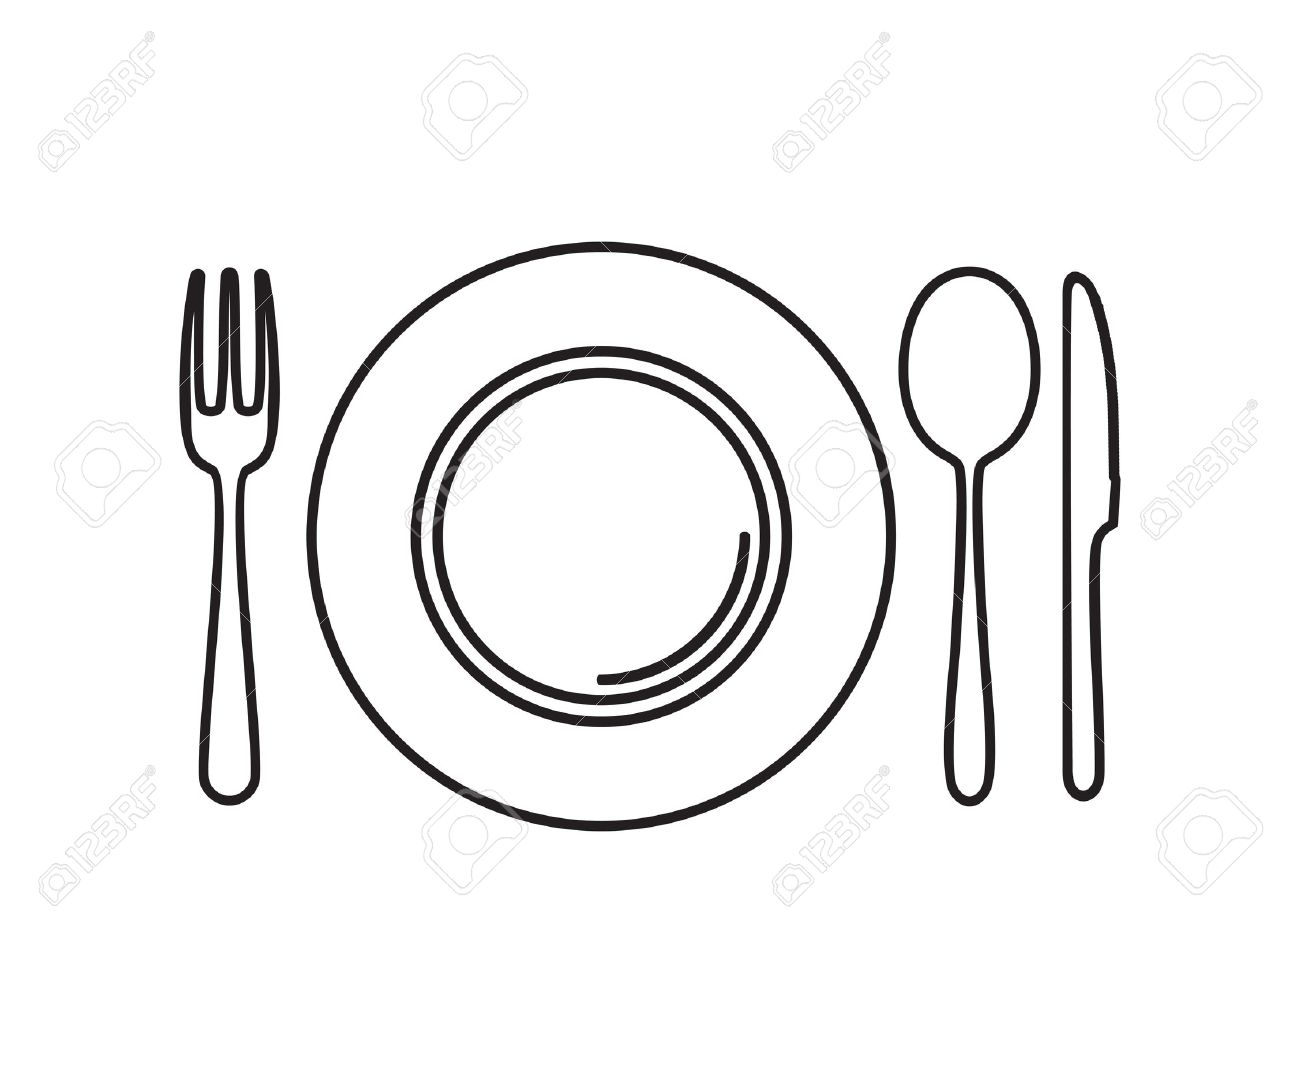 Fork knife spoon clipart 7 » Clipart Station.